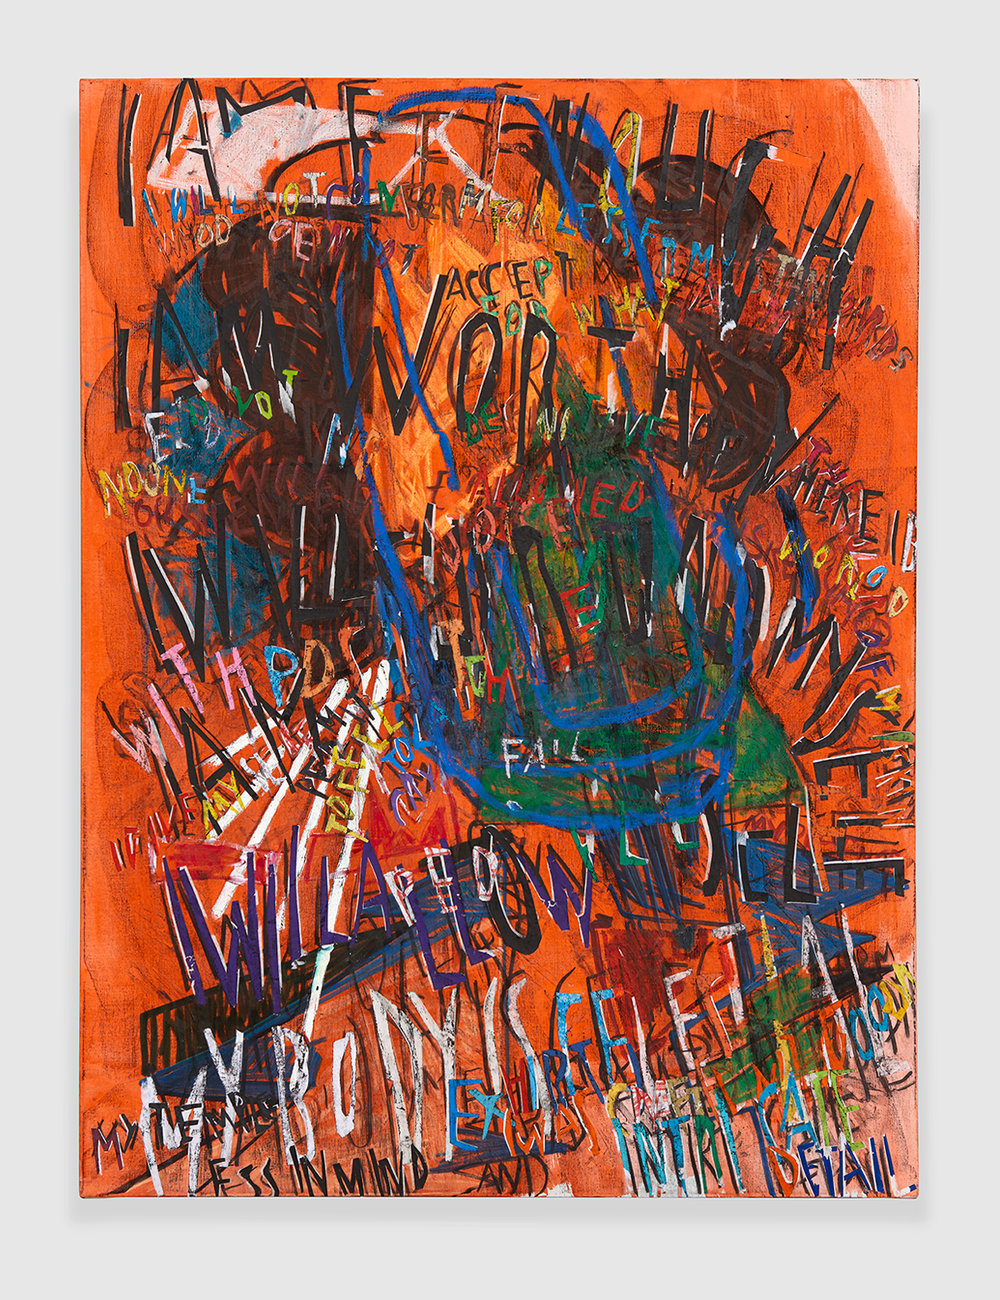 RGB Affirmations (Orange) , 2018 acrylic, marker, oil stick, oil, charcoal and paper collage on linen 48 x 36 in - 21,9 x 91,4 cm